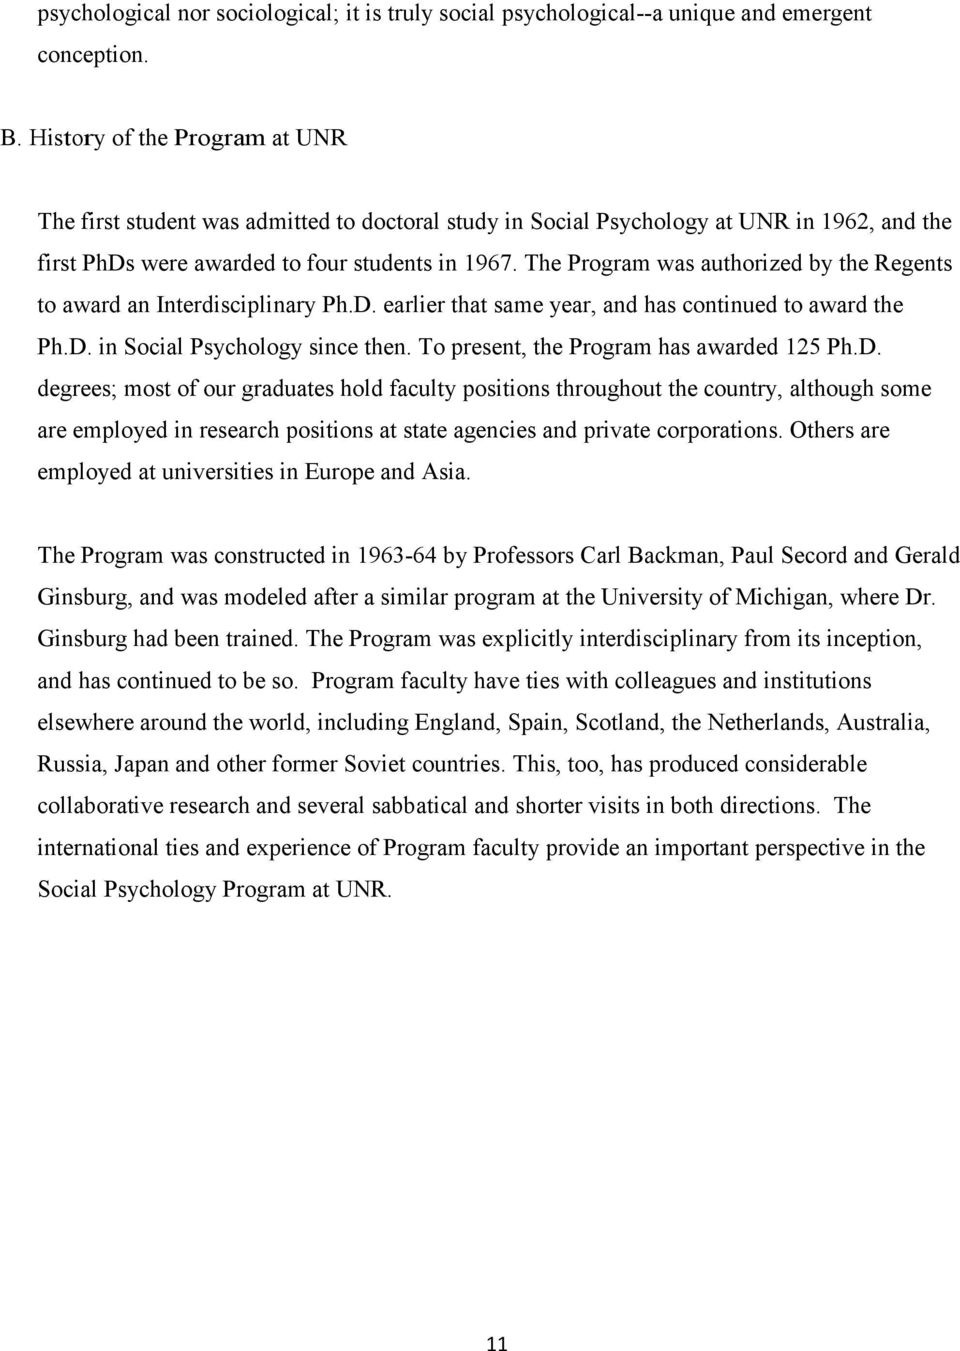 The Program was authorized by the Regents to award an Interdisciplinary Ph.D. earlier that same year, and has continued to award the Ph.D. in Social Psychology since then.